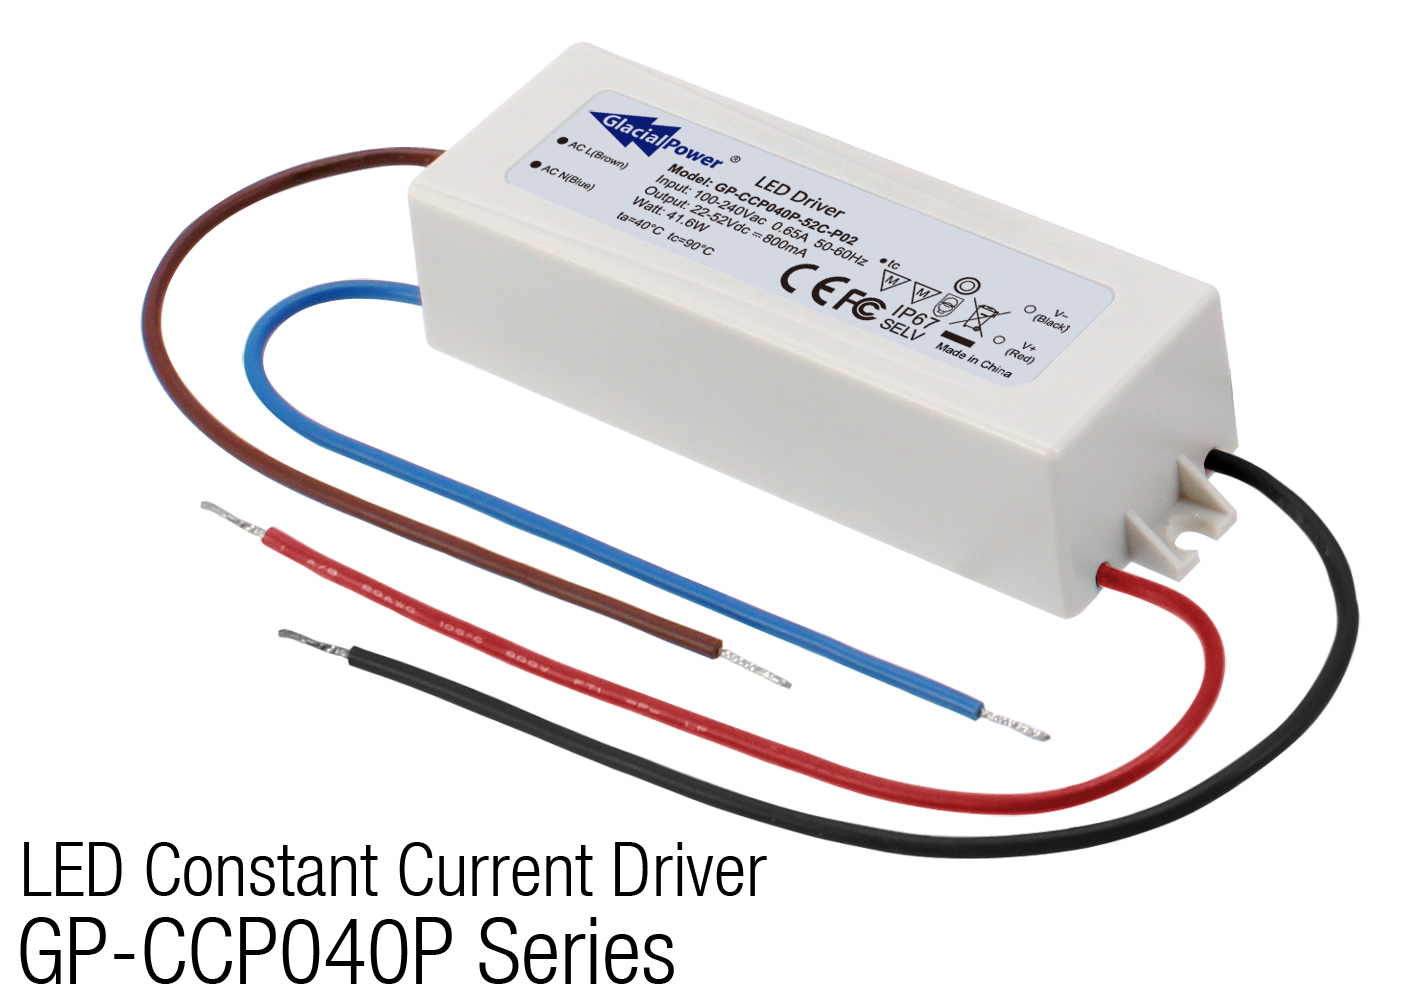 GlacialPower Launches GP-CCP040P LED Constant Current Driver Series which focus on the 36V CoB market